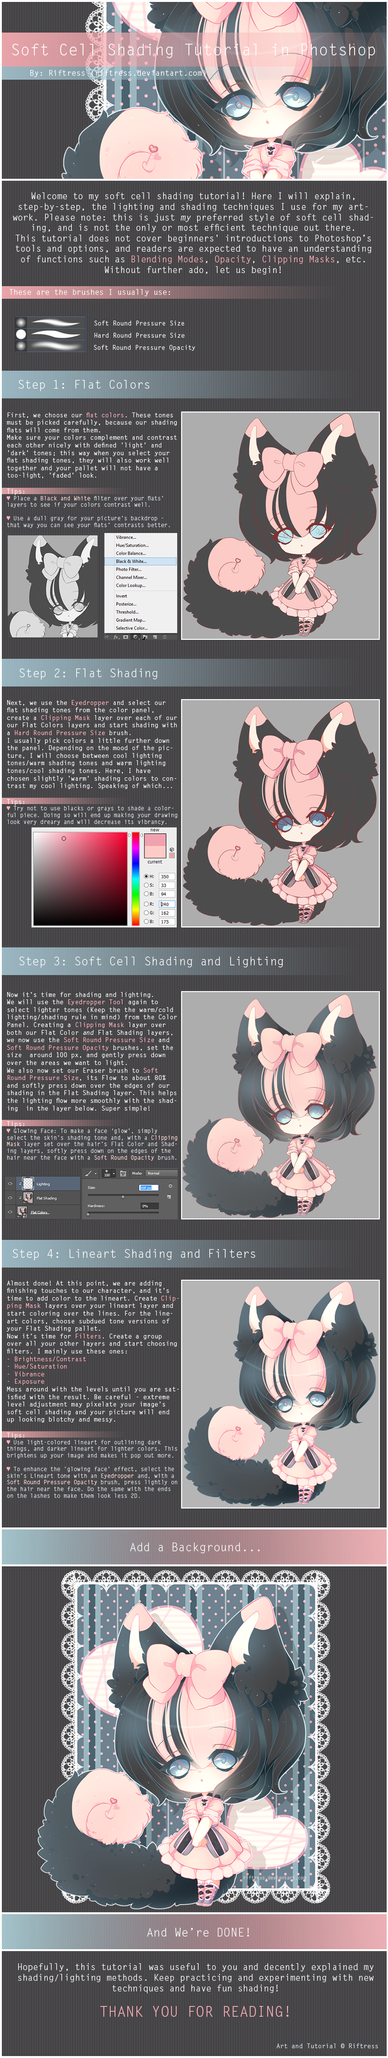 Soft Cel Shading Tutorial in Photoshop by Riftress